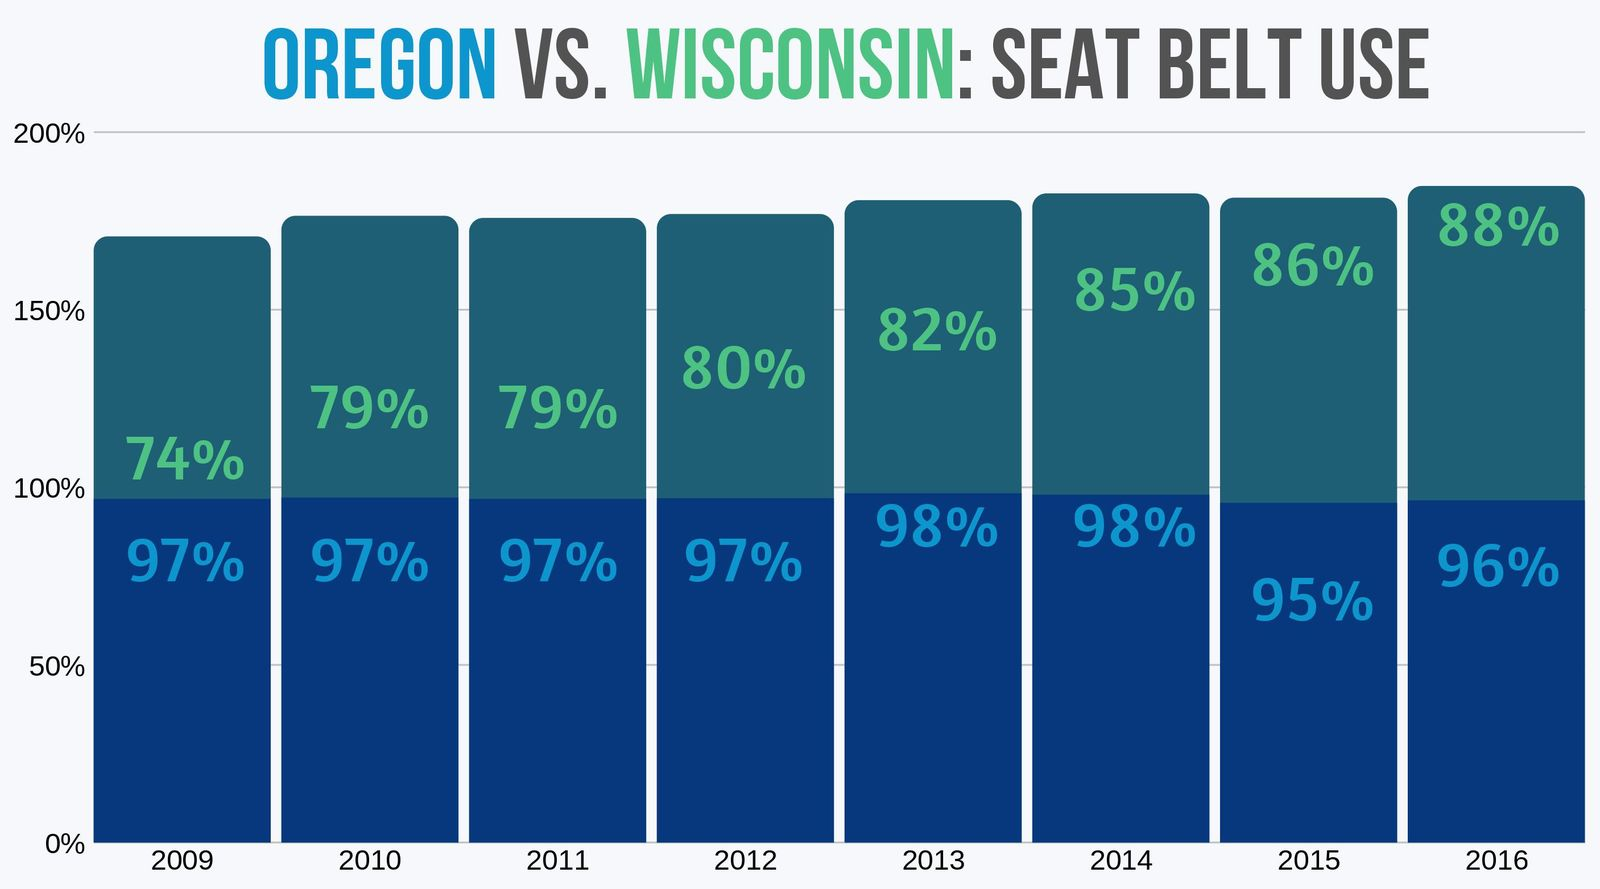 Oregon and Wisconsin Seat Belt use from 2009 to 2016